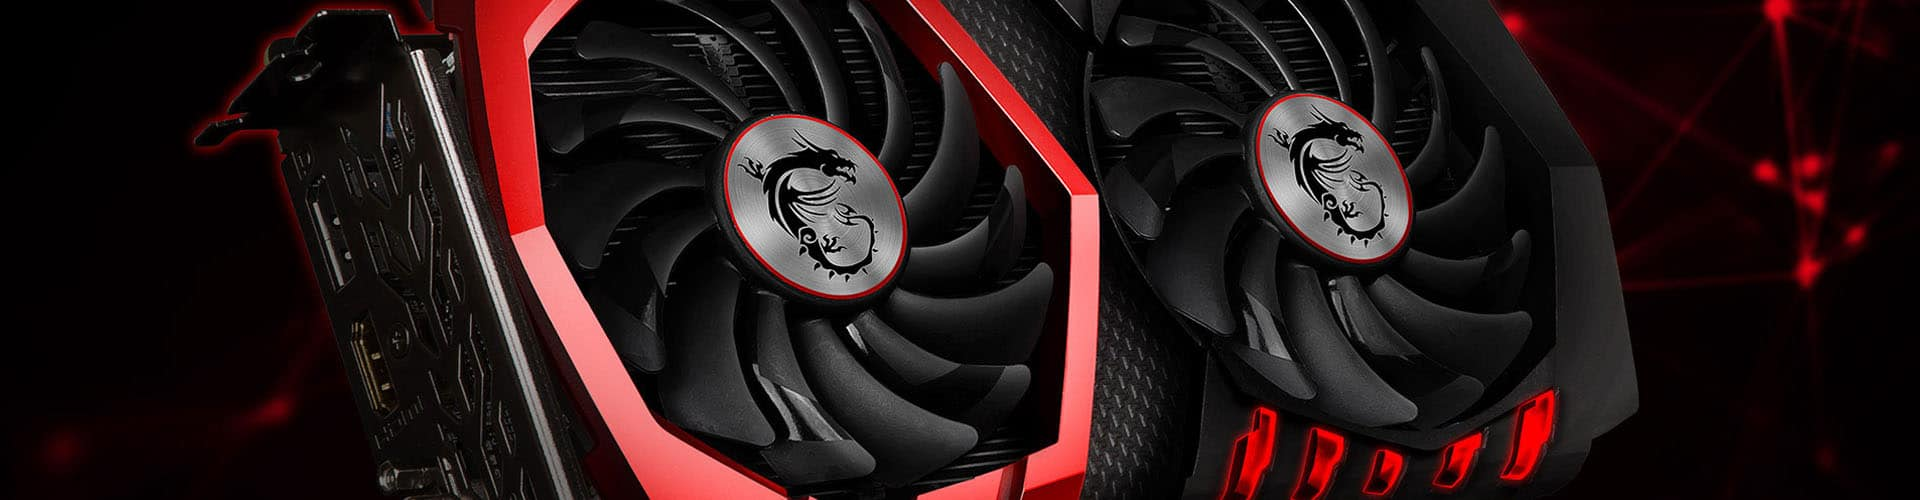 GPU Fan Not Spinning? Here's How To Fix It